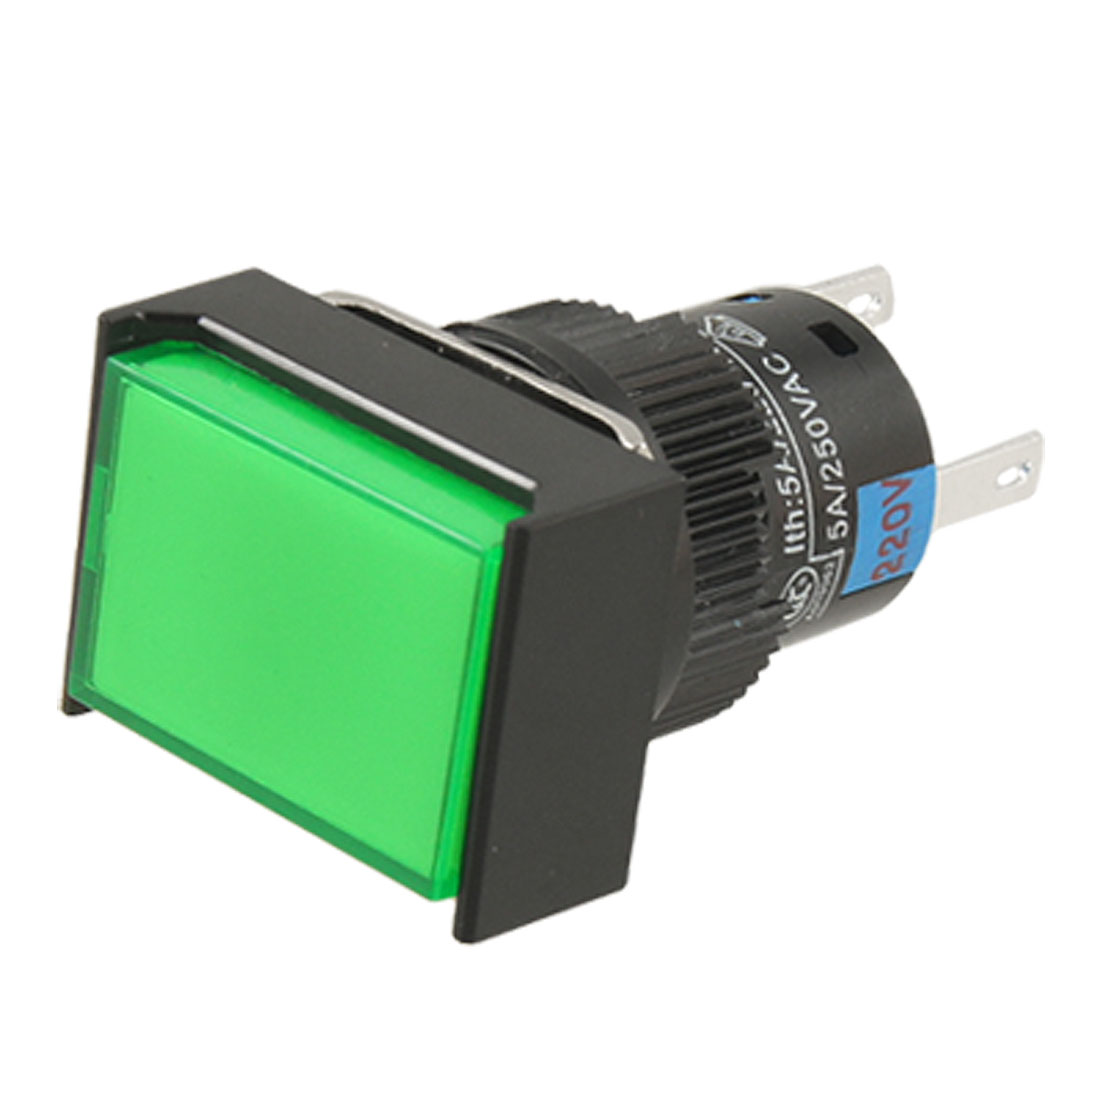 AC 220V Green Cap Lamp 1NO 1NC Self-locking Contact Push Button Switch